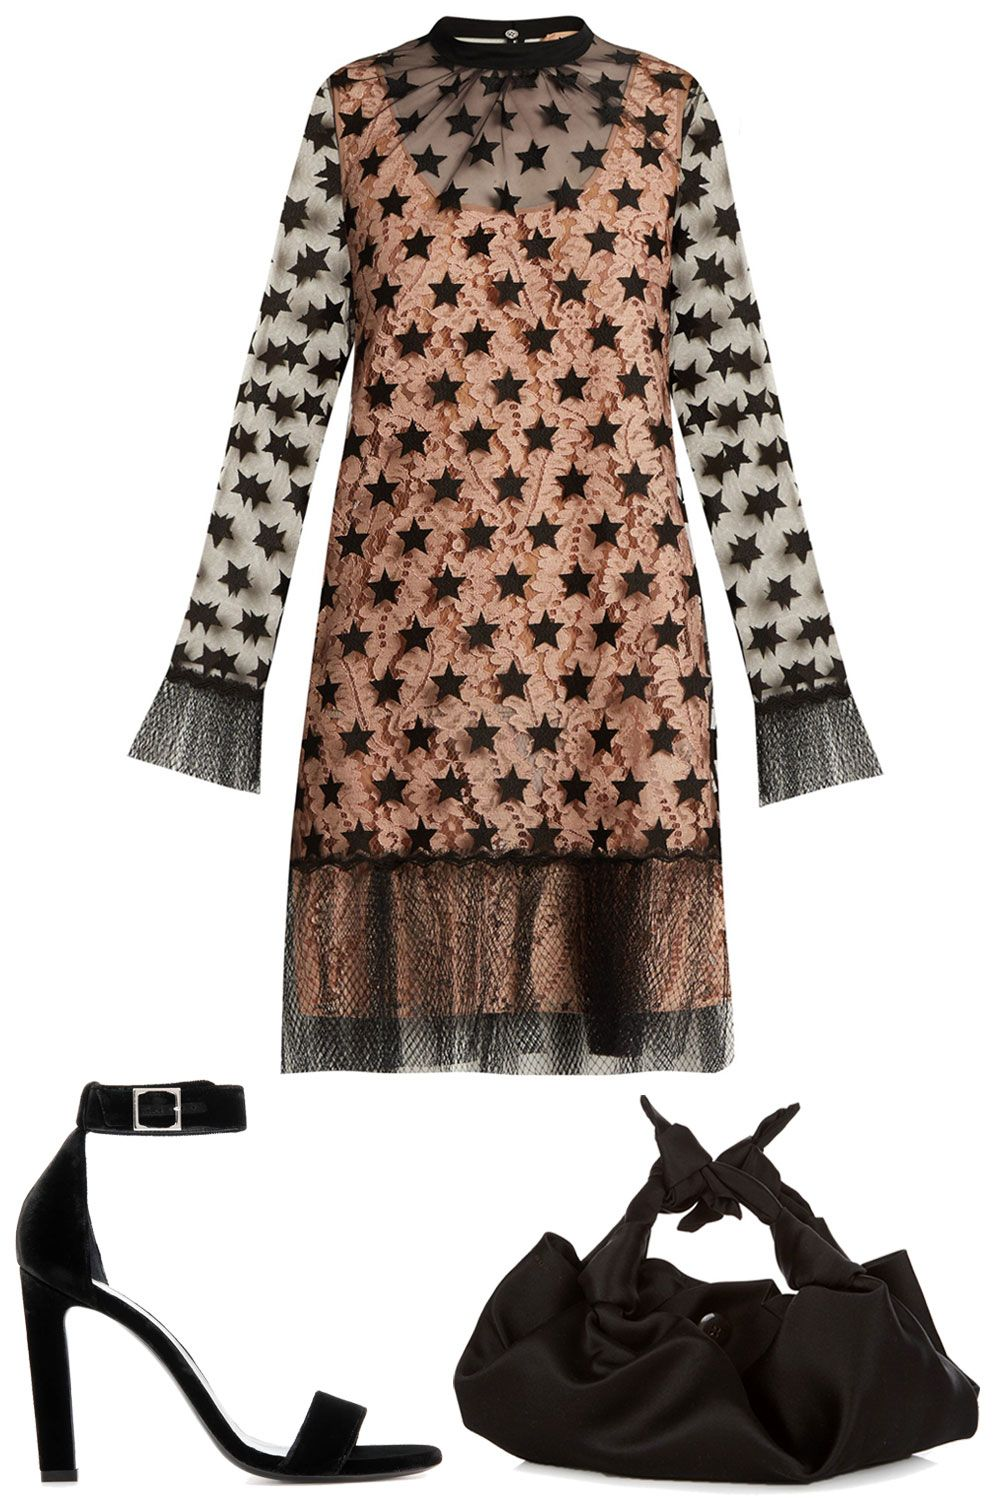 fall wedding guest outfits fall wedding guest dresses What to Wear to a Fall Wedding 10 Fall Wedding Guest Dresses and Outfits